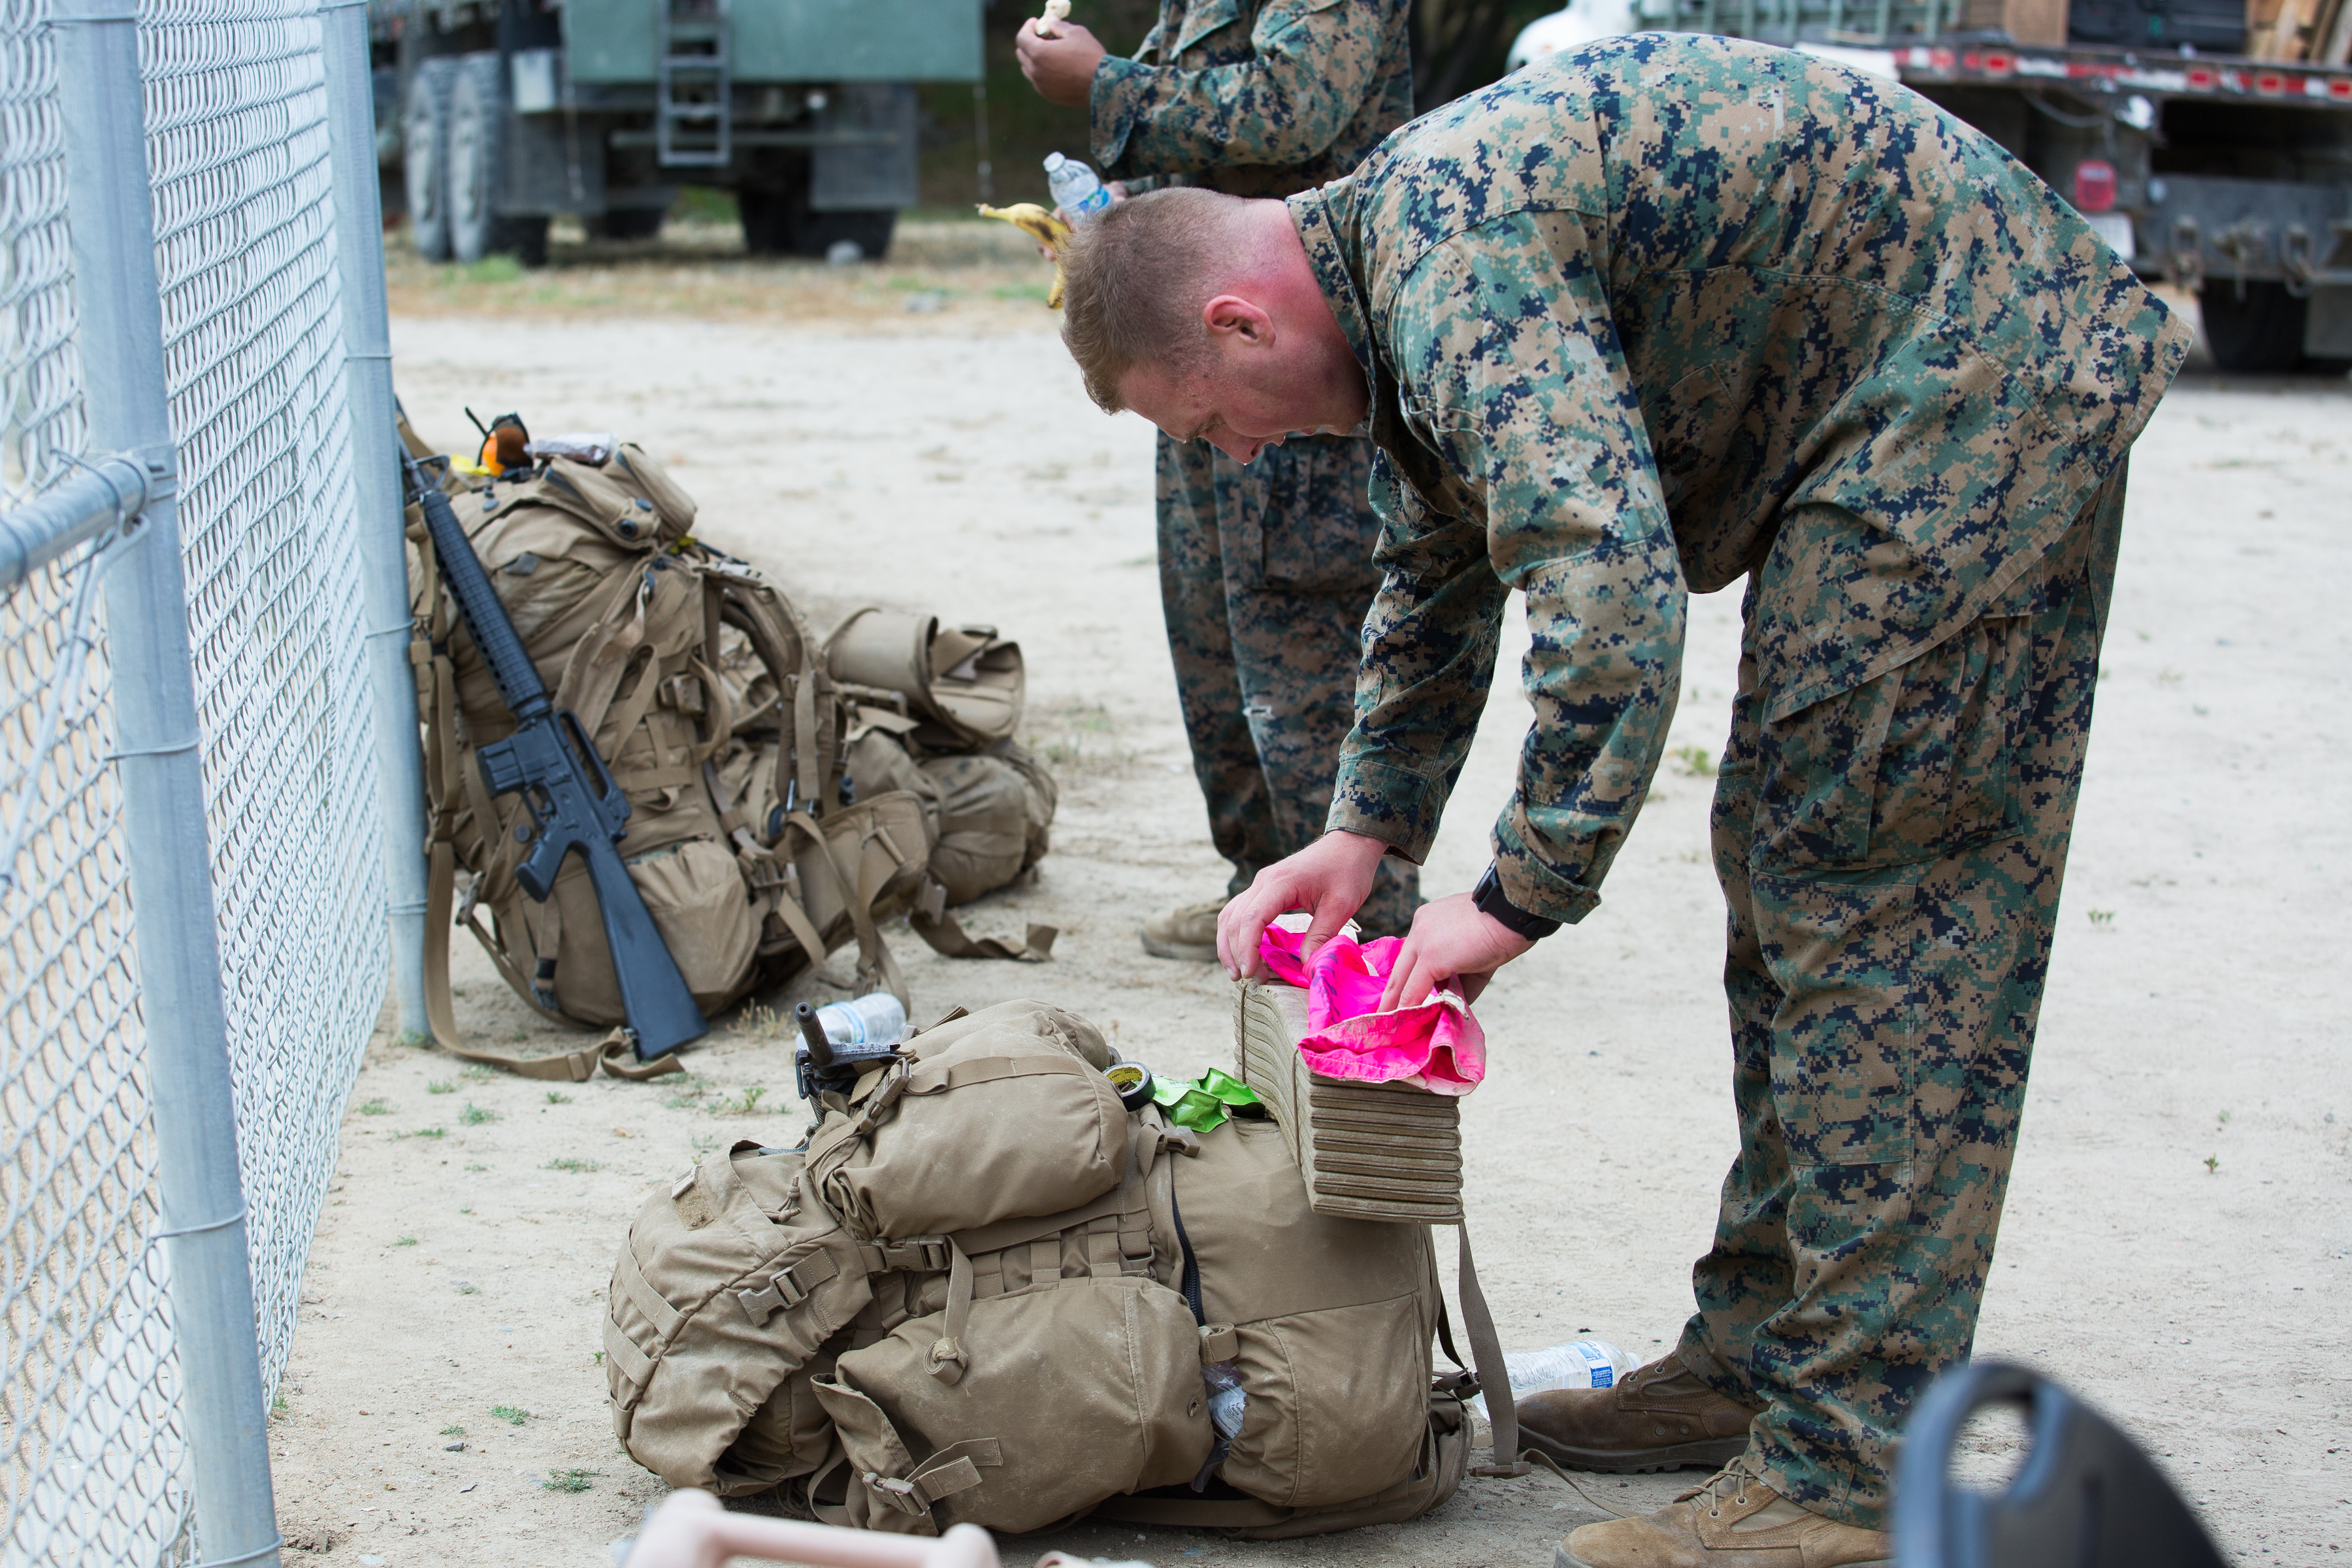 2nd Lt. Bradford Mills folds the pink flag on which the name of his fallen brother is written. He carries the name of Major Douglas Zembiec on his back in memory of his brother as he completes the Recon Challenge Thursday at Camp Pendleton.